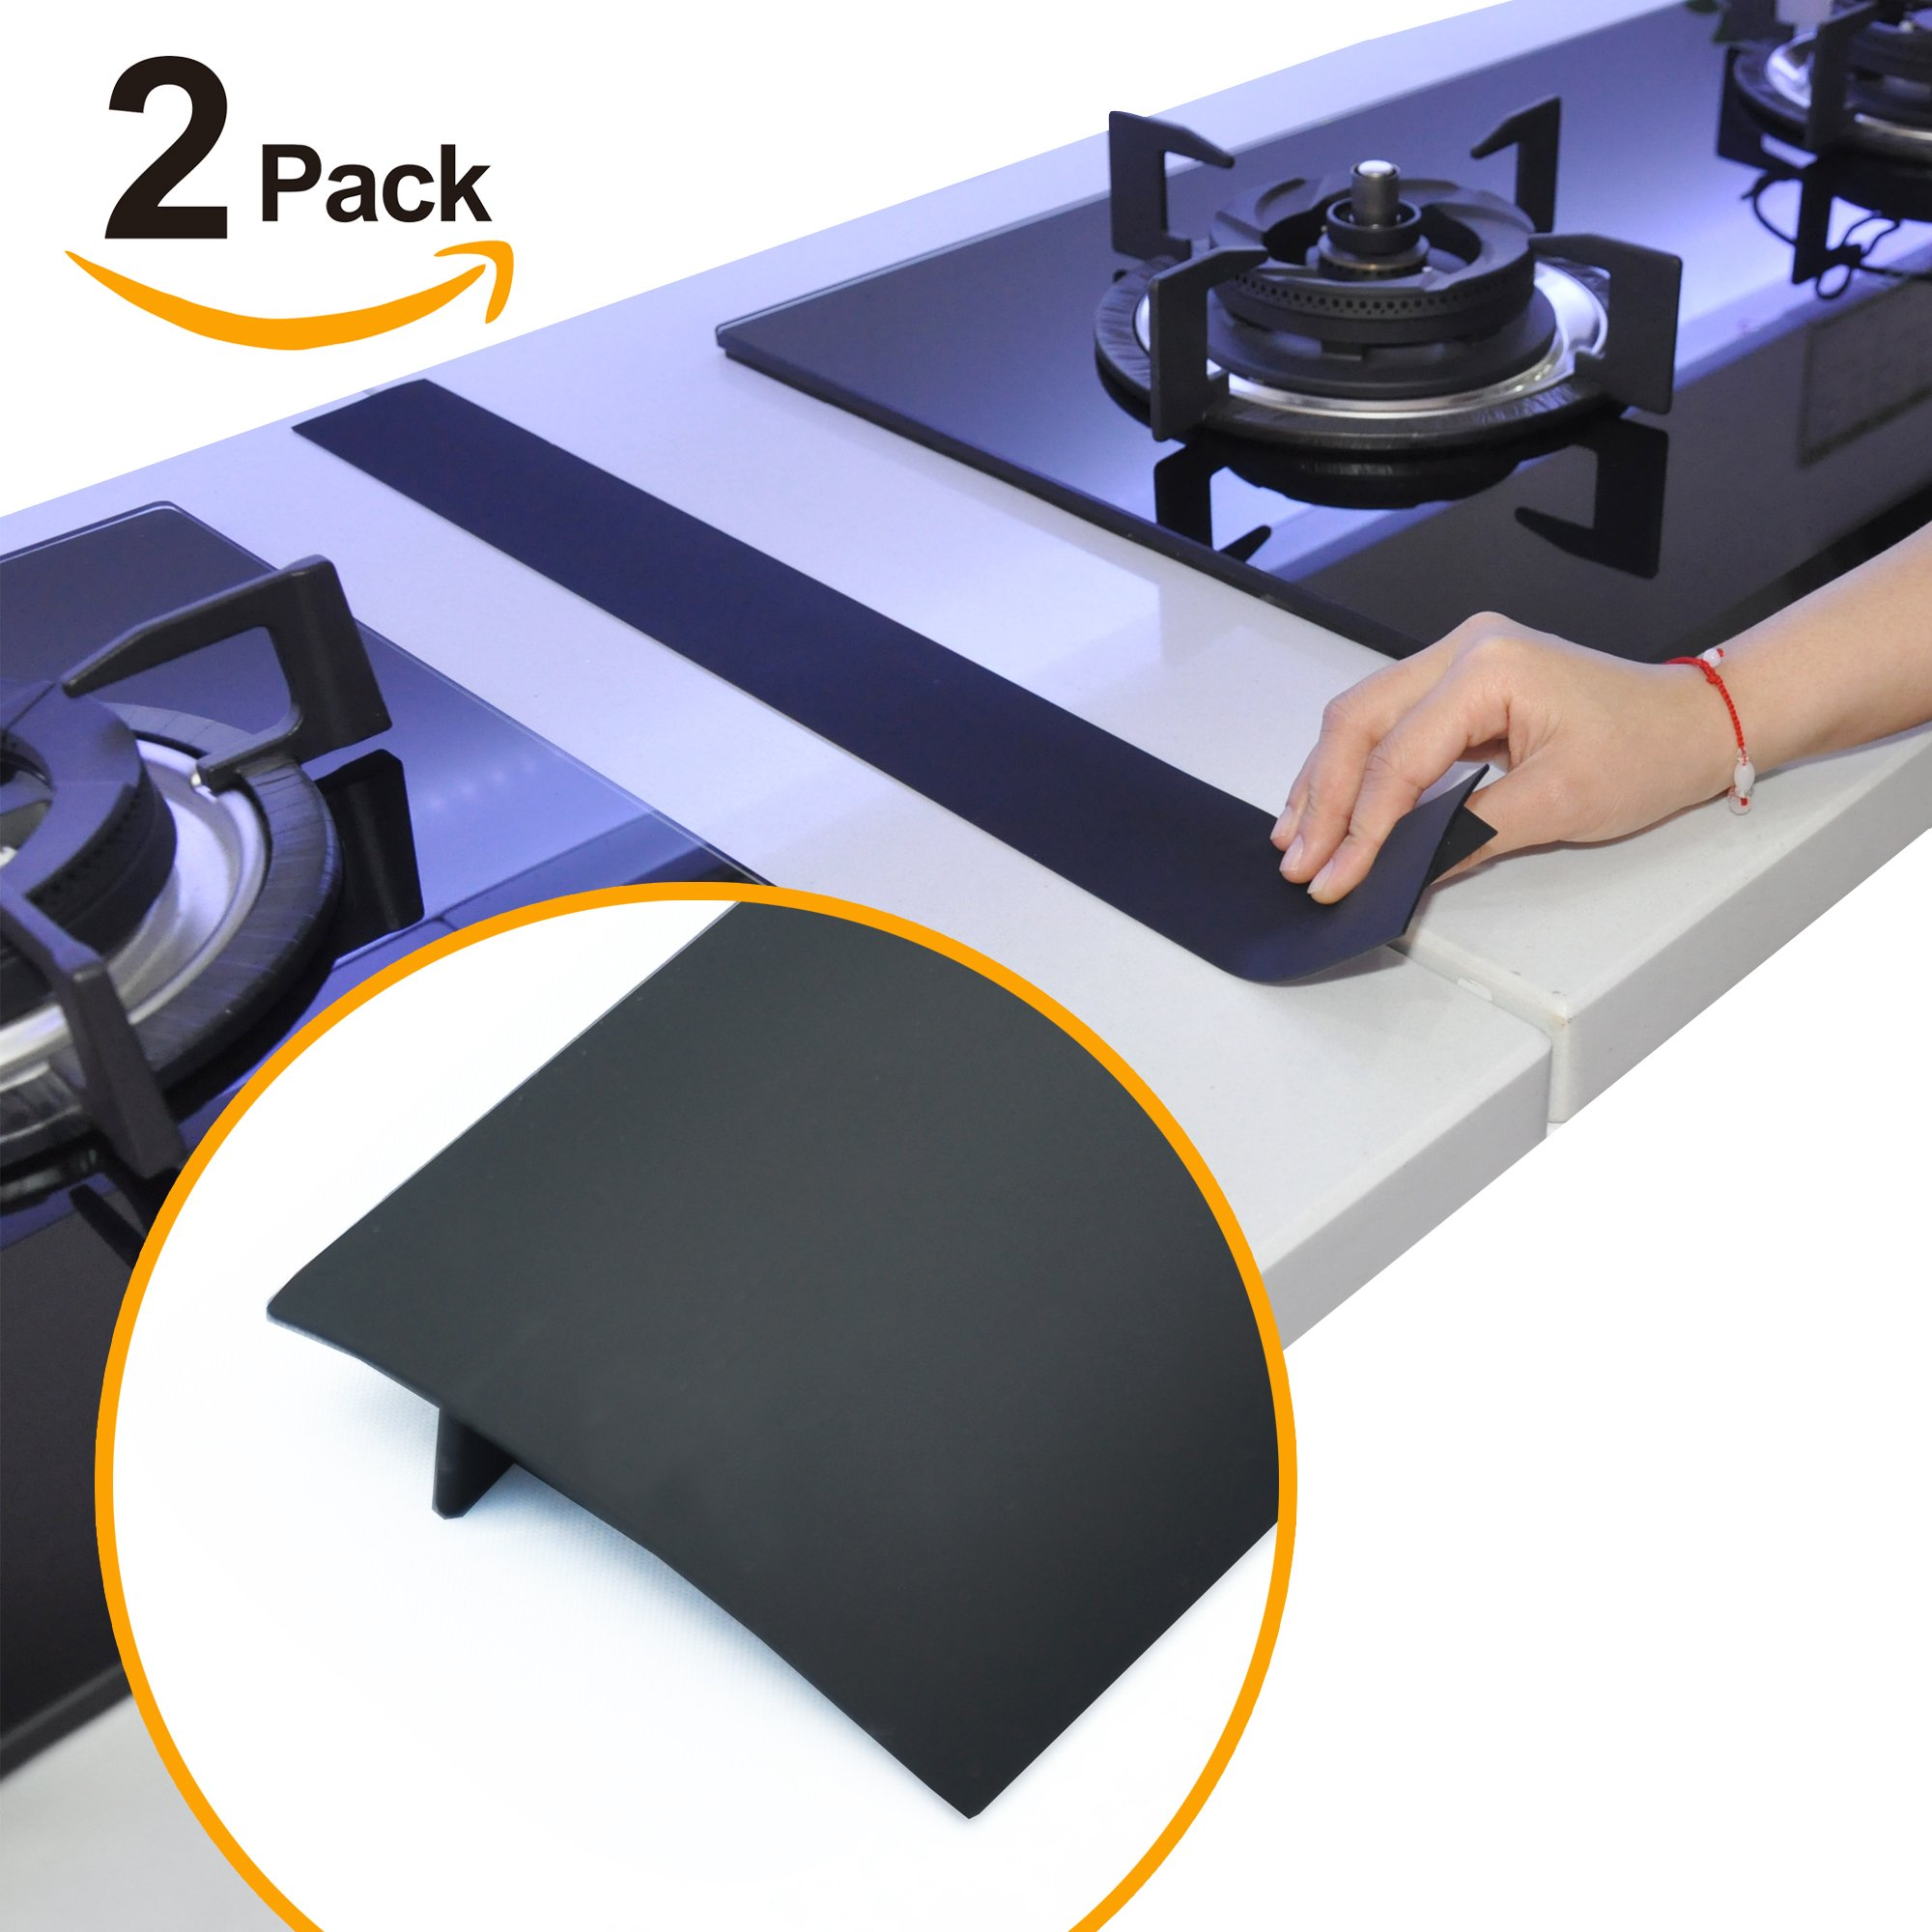 Silicone Stove Counter Gap Cover by Kindga, Easy Clean Gap Filler Sealing Spills Between Kitchen Counter, Appliances,Stovetop, Oven, Washing Machine, Washer, Dryer Set of 2 (Black)